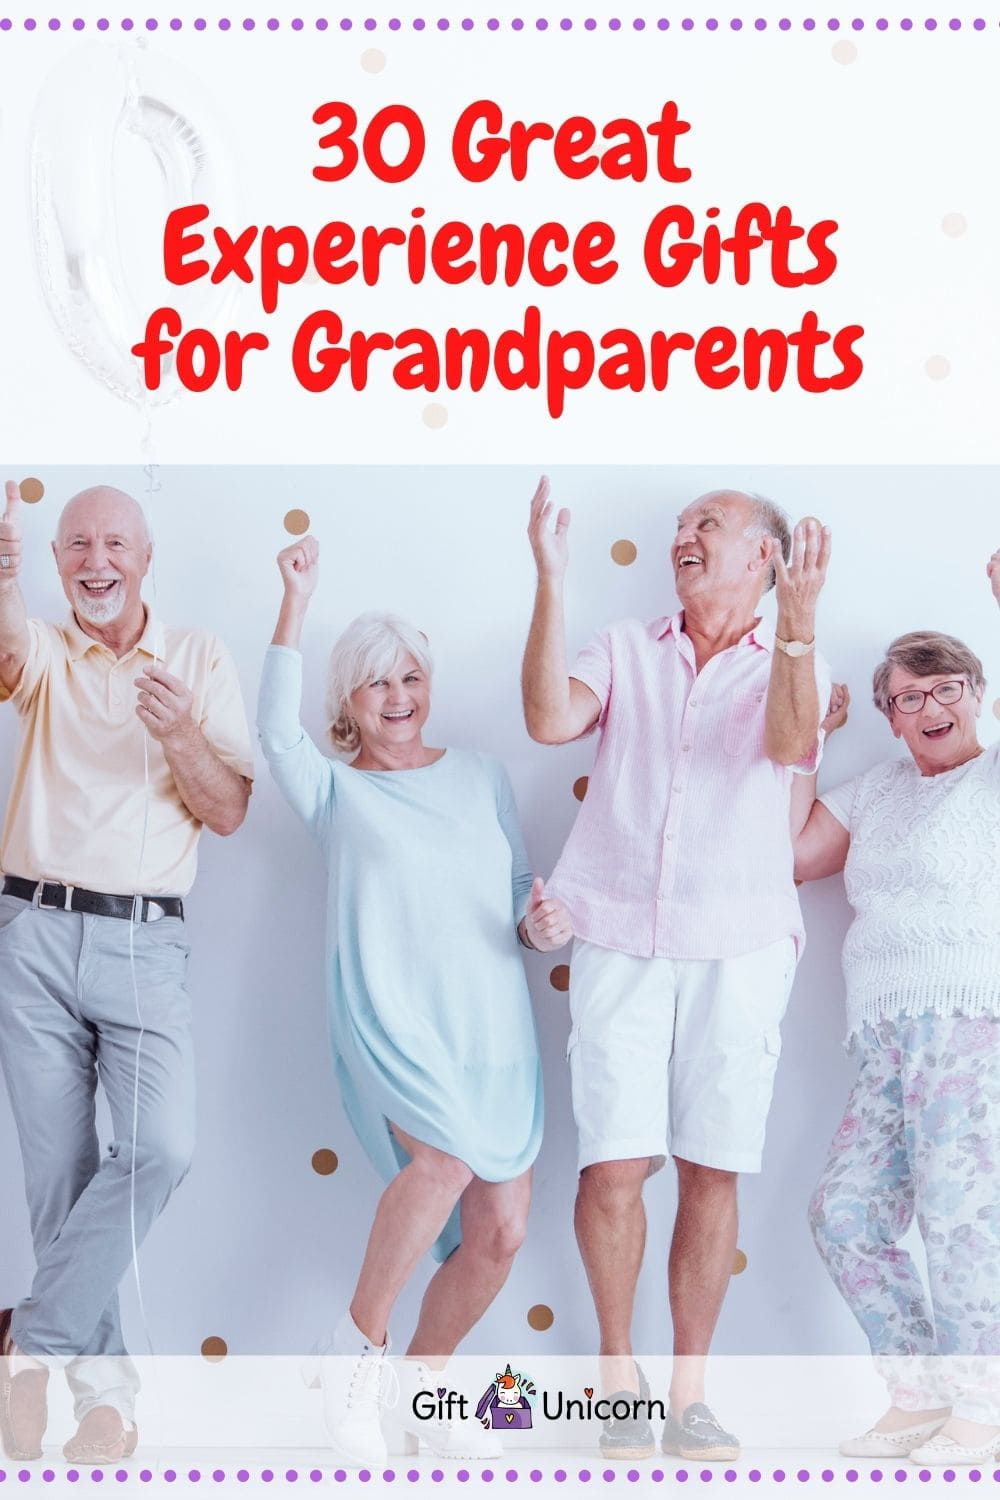 grandparents experience gifts pin image